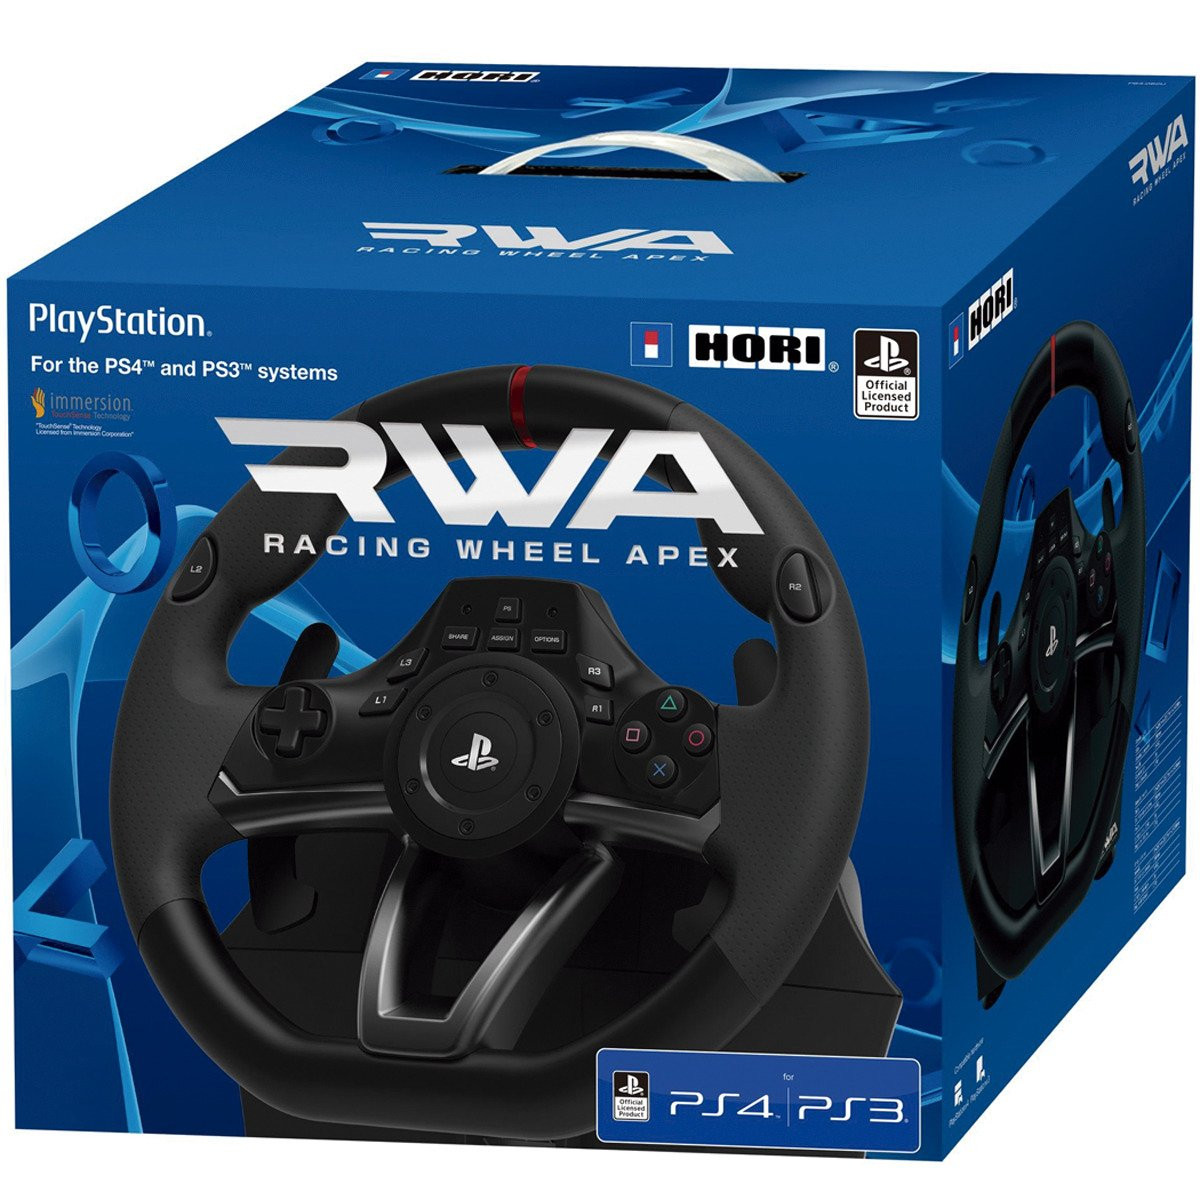 volante racing wheel apex para ps4 ps3 y pc. Black Bedroom Furniture Sets. Home Design Ideas